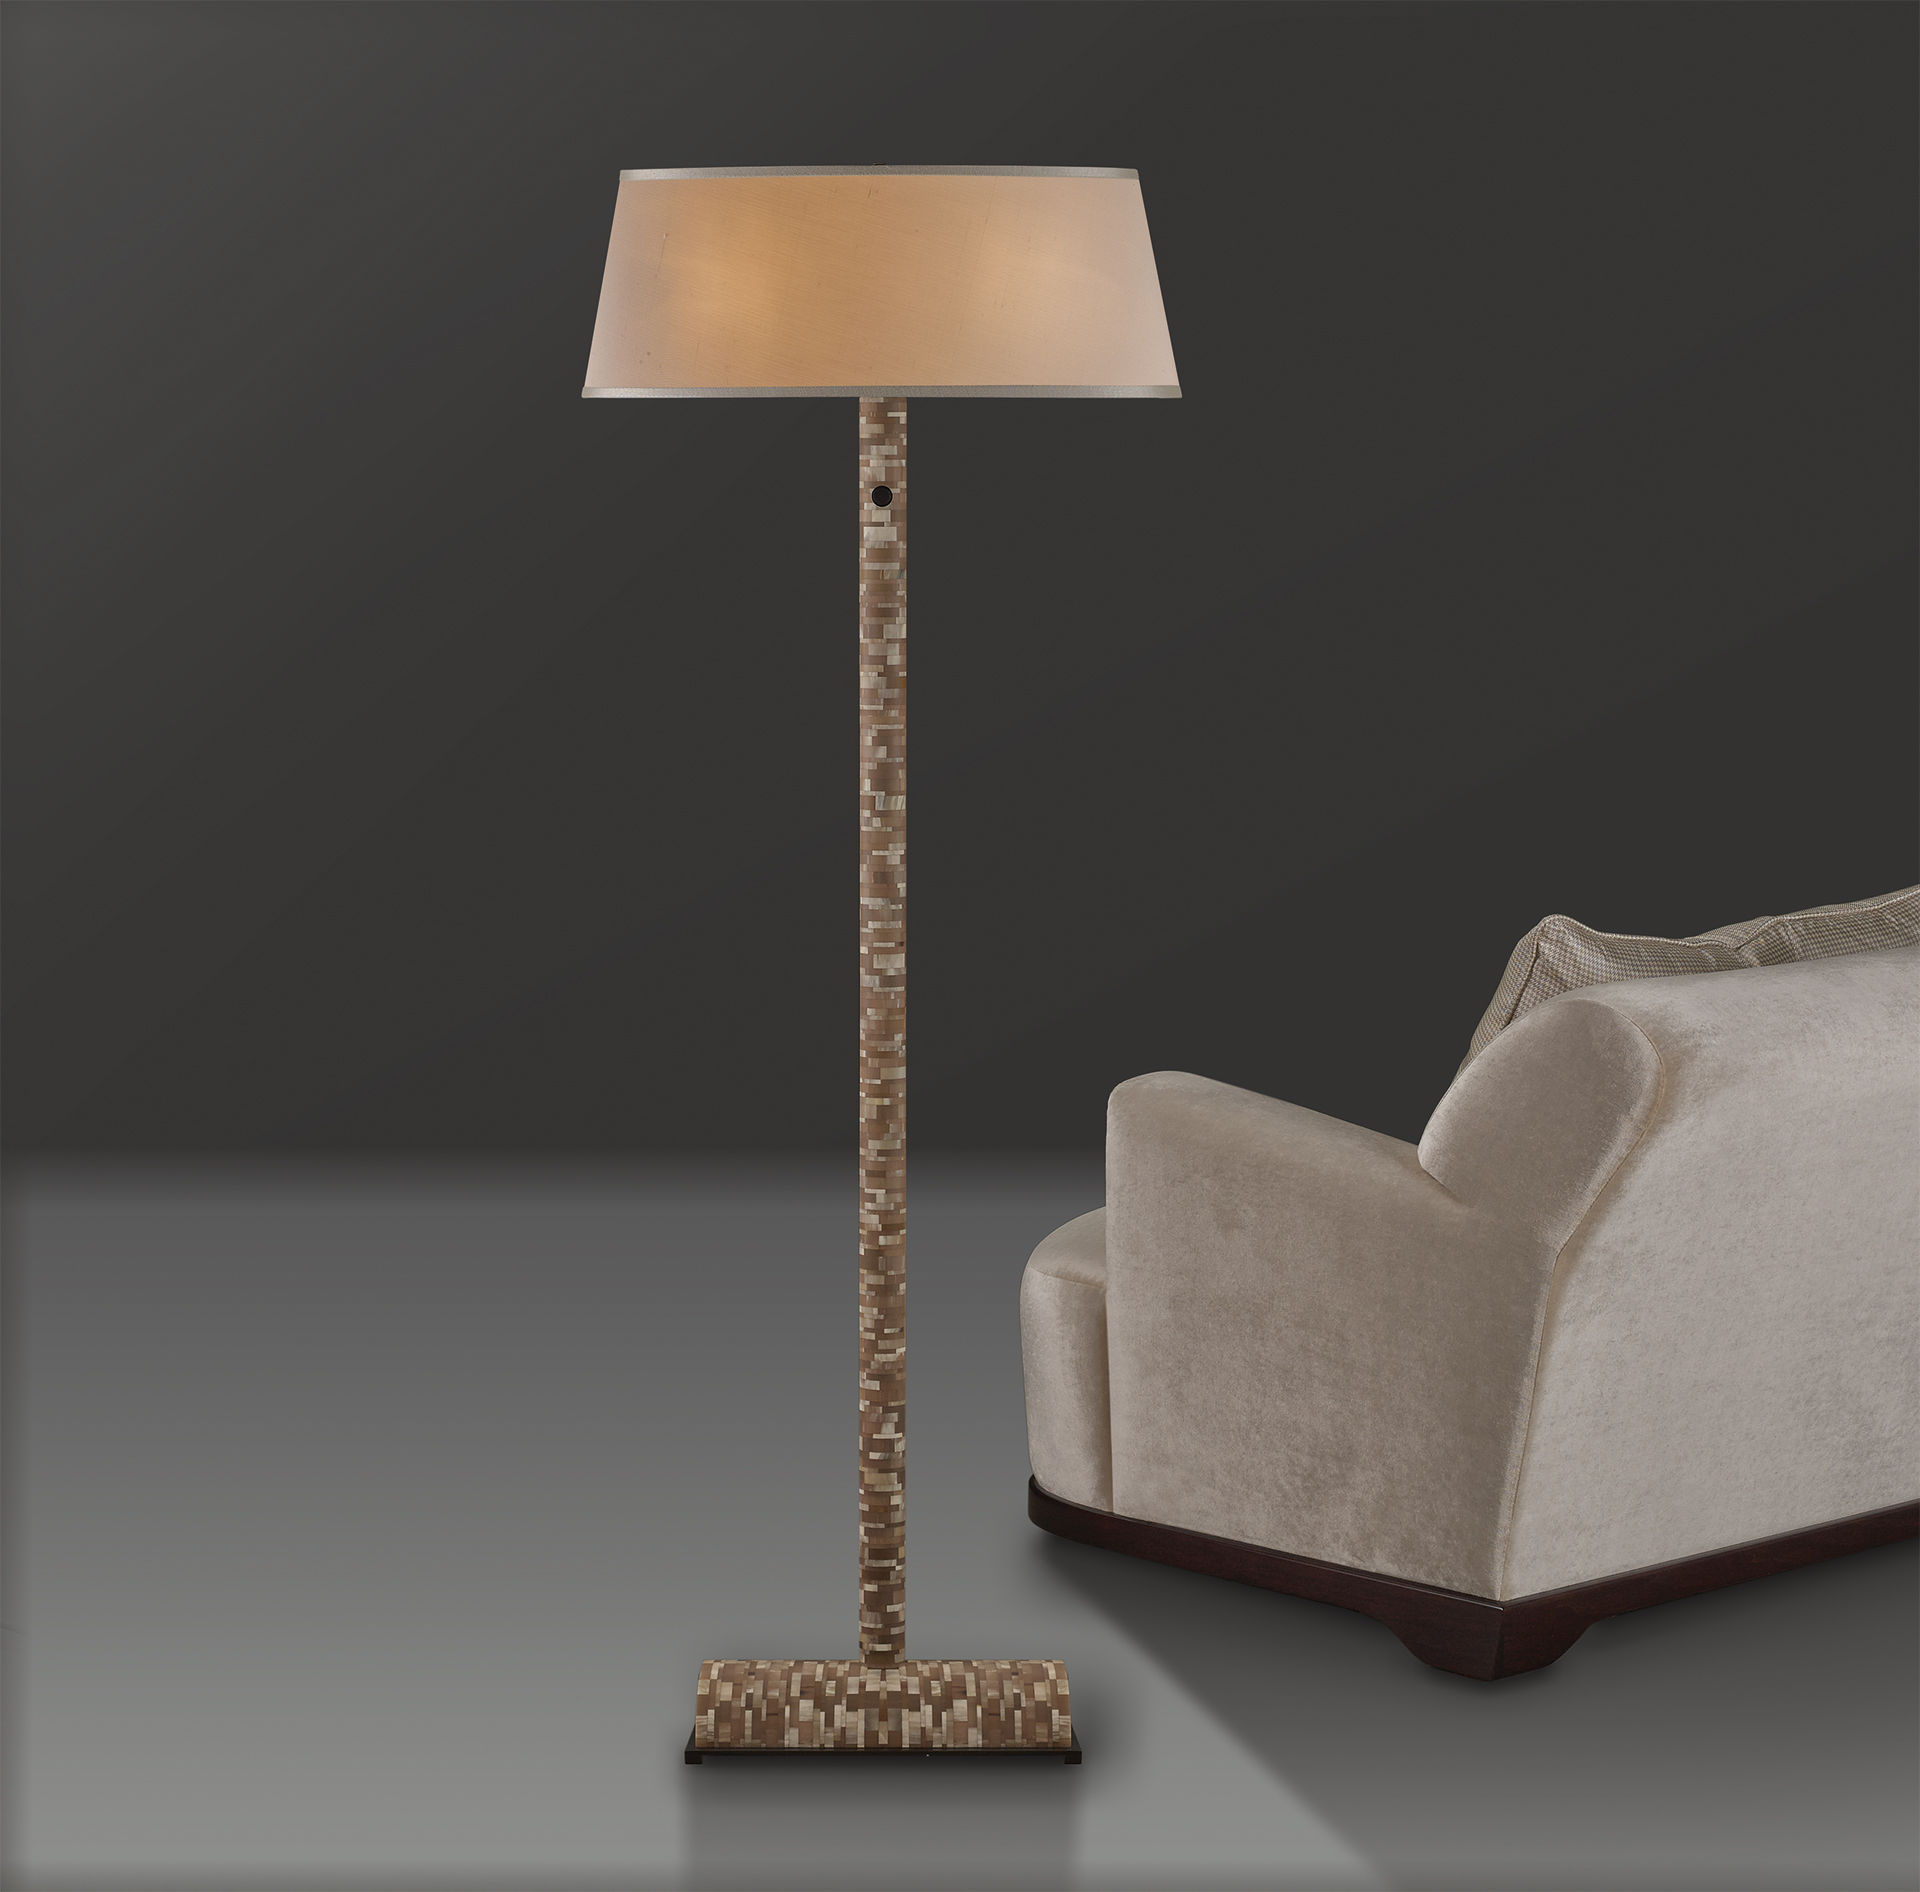 Zebù is a reading LED lamp in horn with touch ignition, bronze details and linen, cotton or silk with handmade edges lampshade, from Promemoria's catalogue | Promemoria